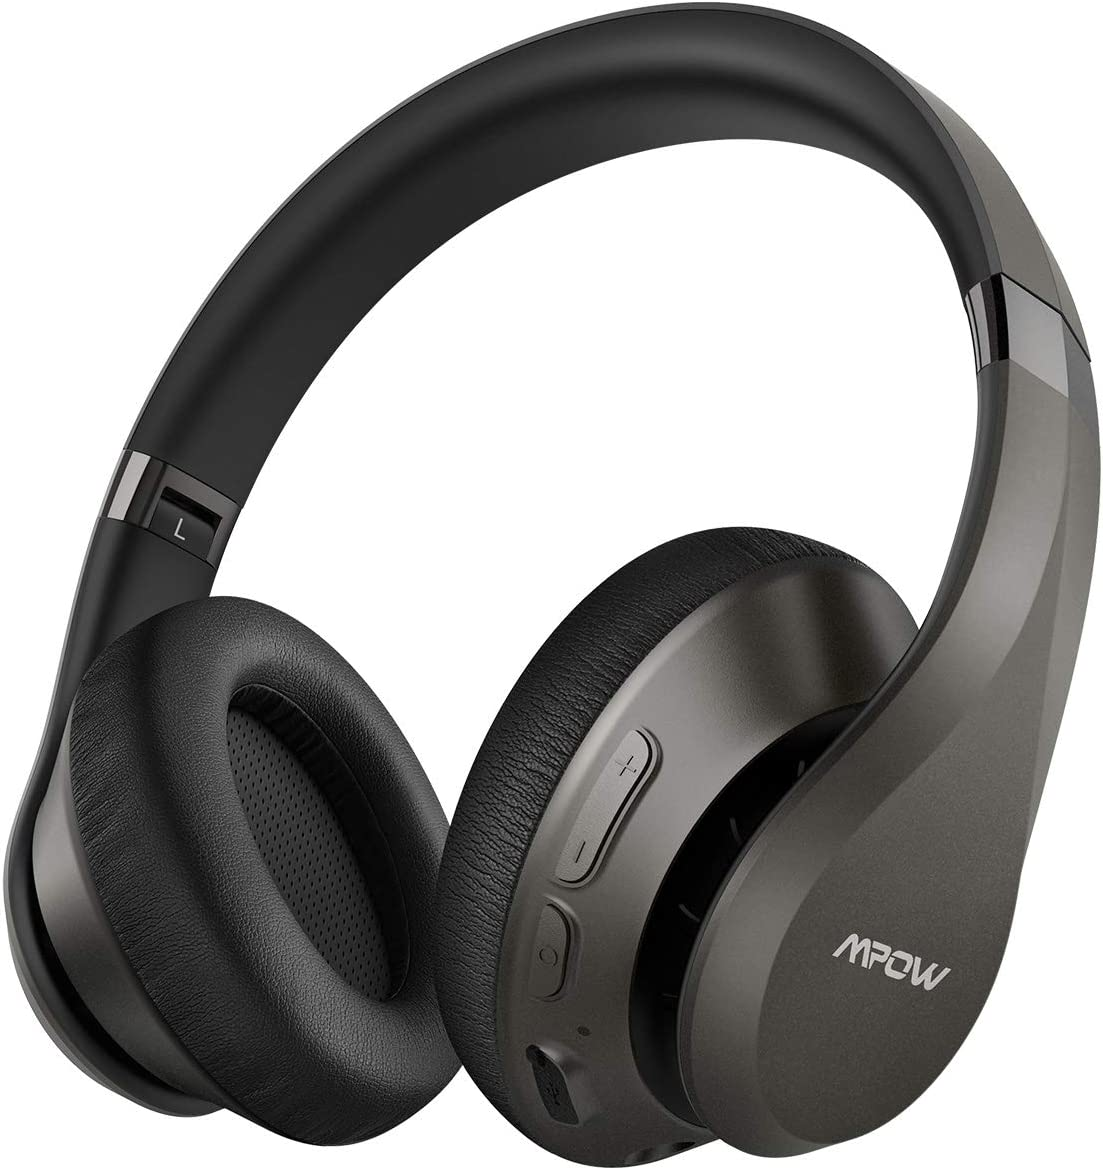 Mpow H20 [Upgraded 059] Bluetooth Headphones Over Ear, Wireless Headphones with Latest CVC 8.0 Mic, 30 Hours Playtime Wireless Hi-Fi Deep Bass Headphones, Over Ear Headphones with Soft Earmuff